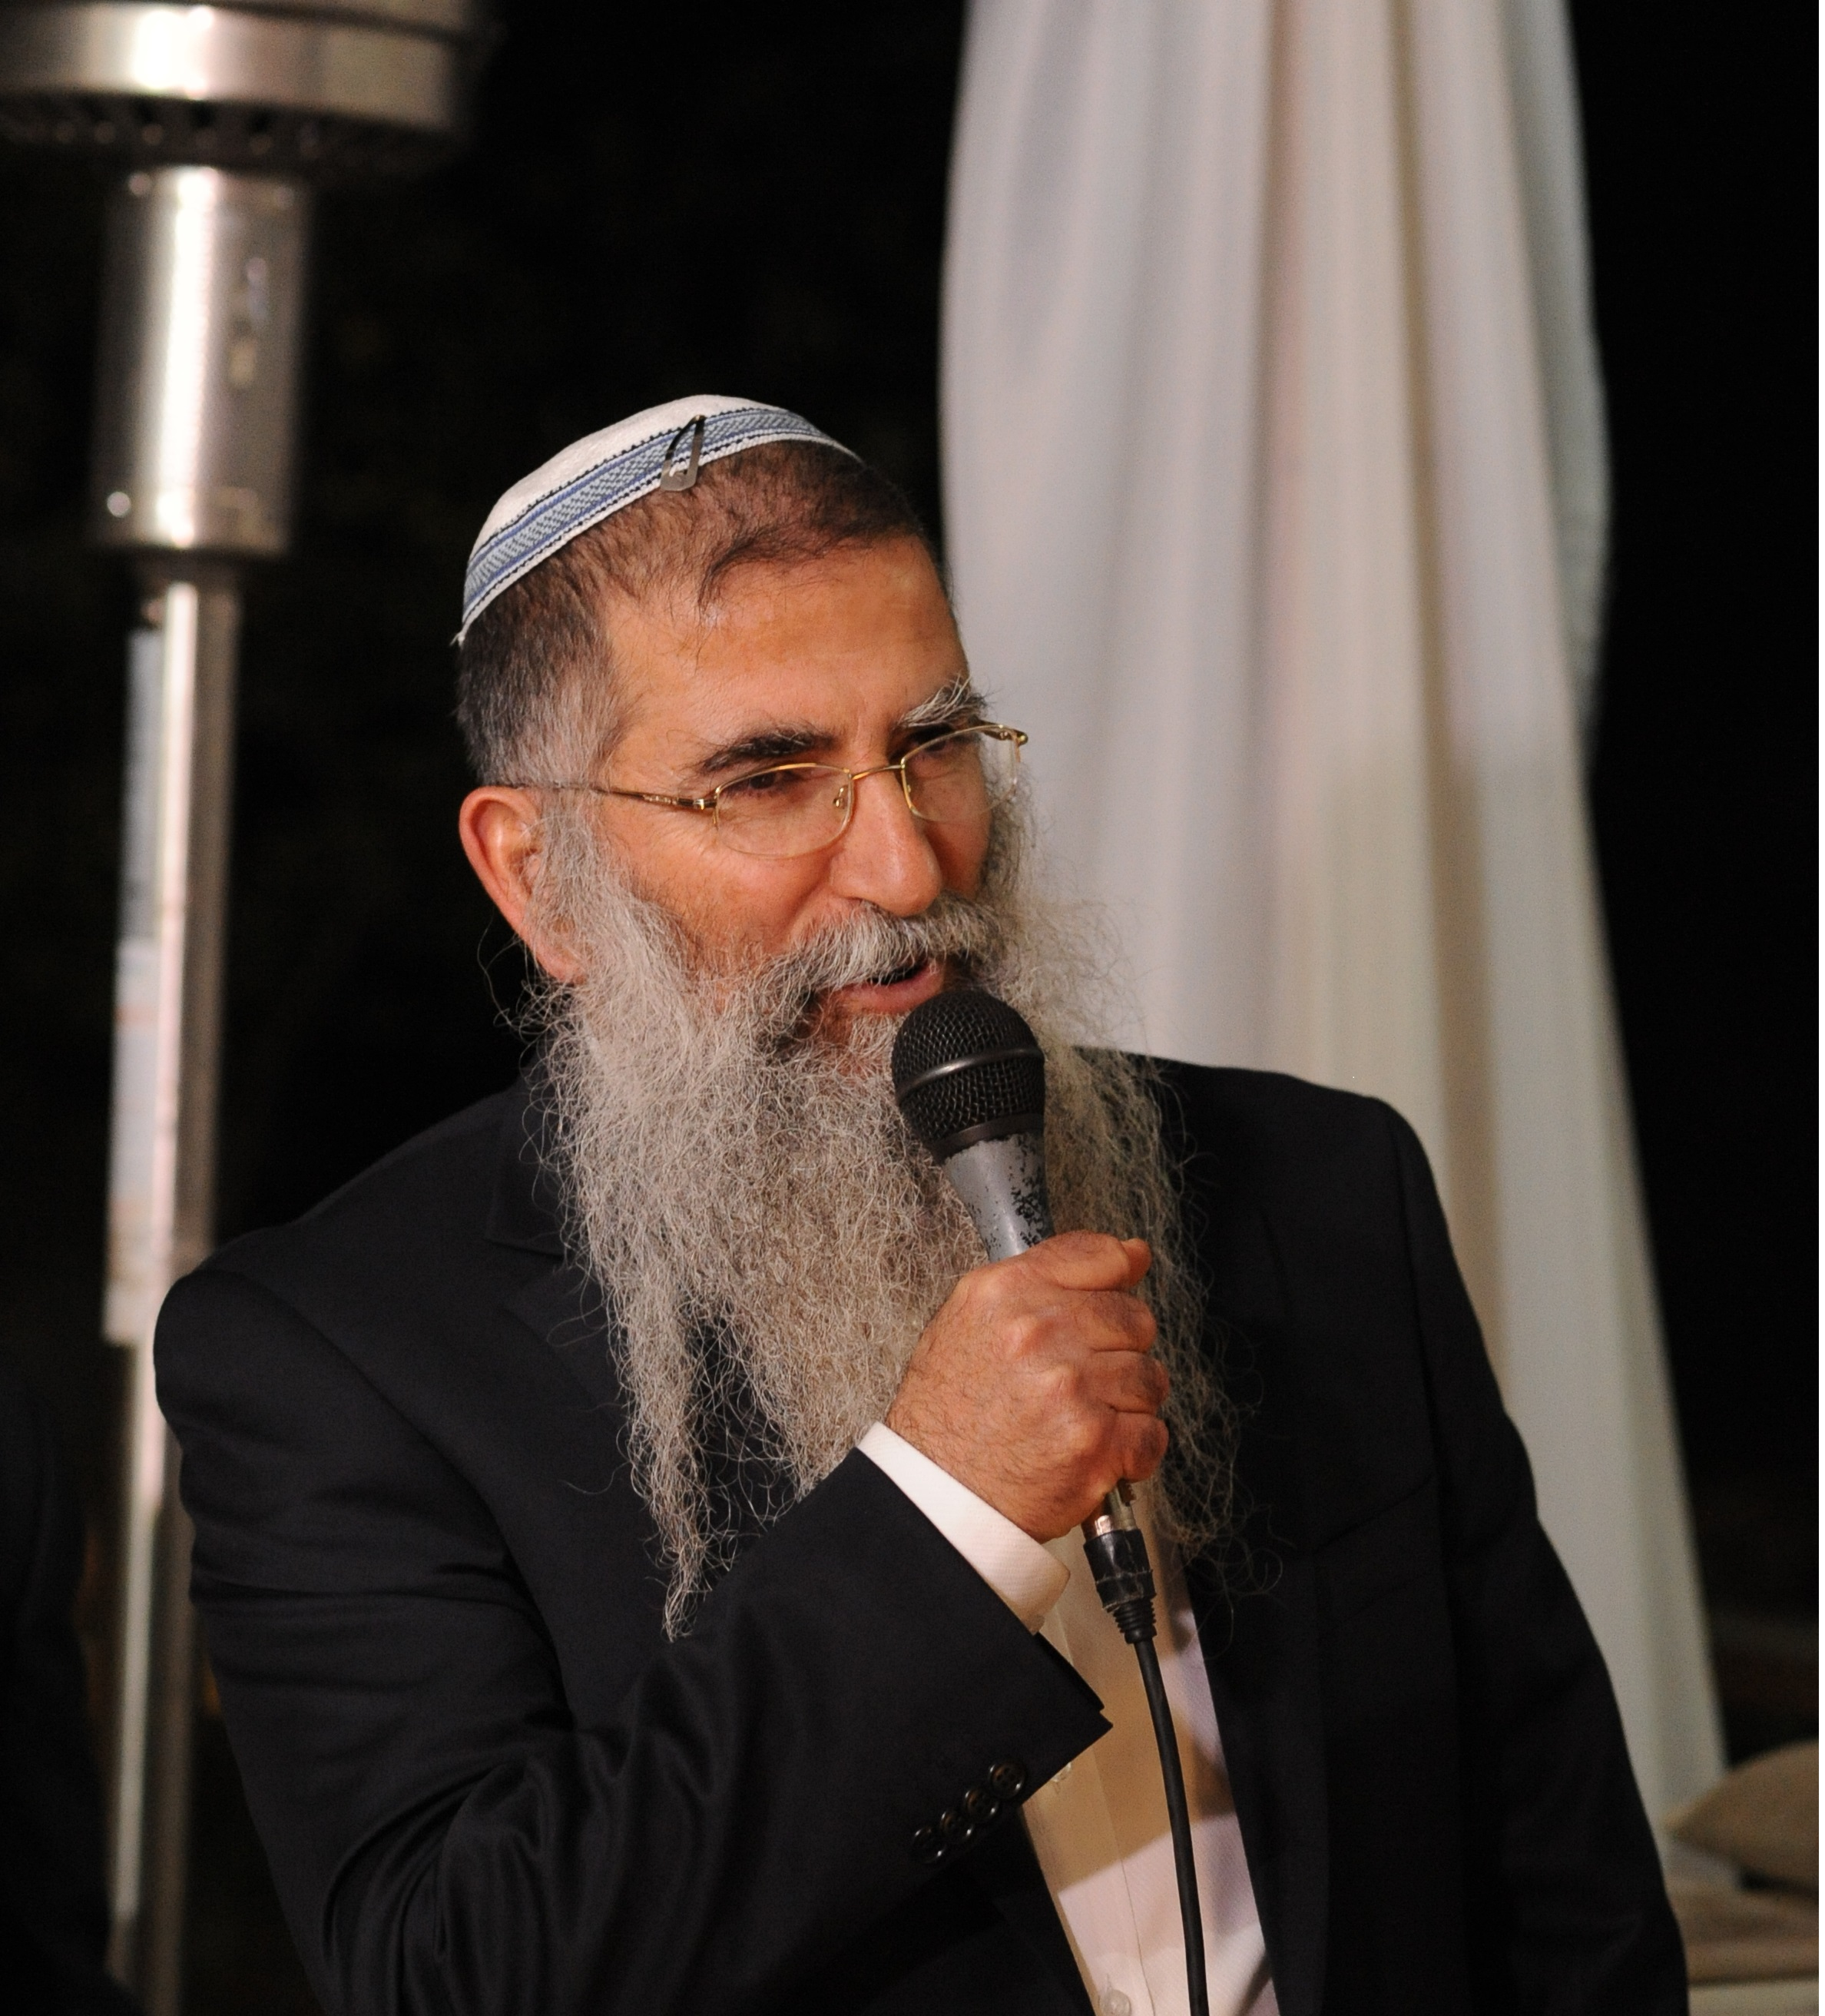 Rabbi Shlomo Shushan